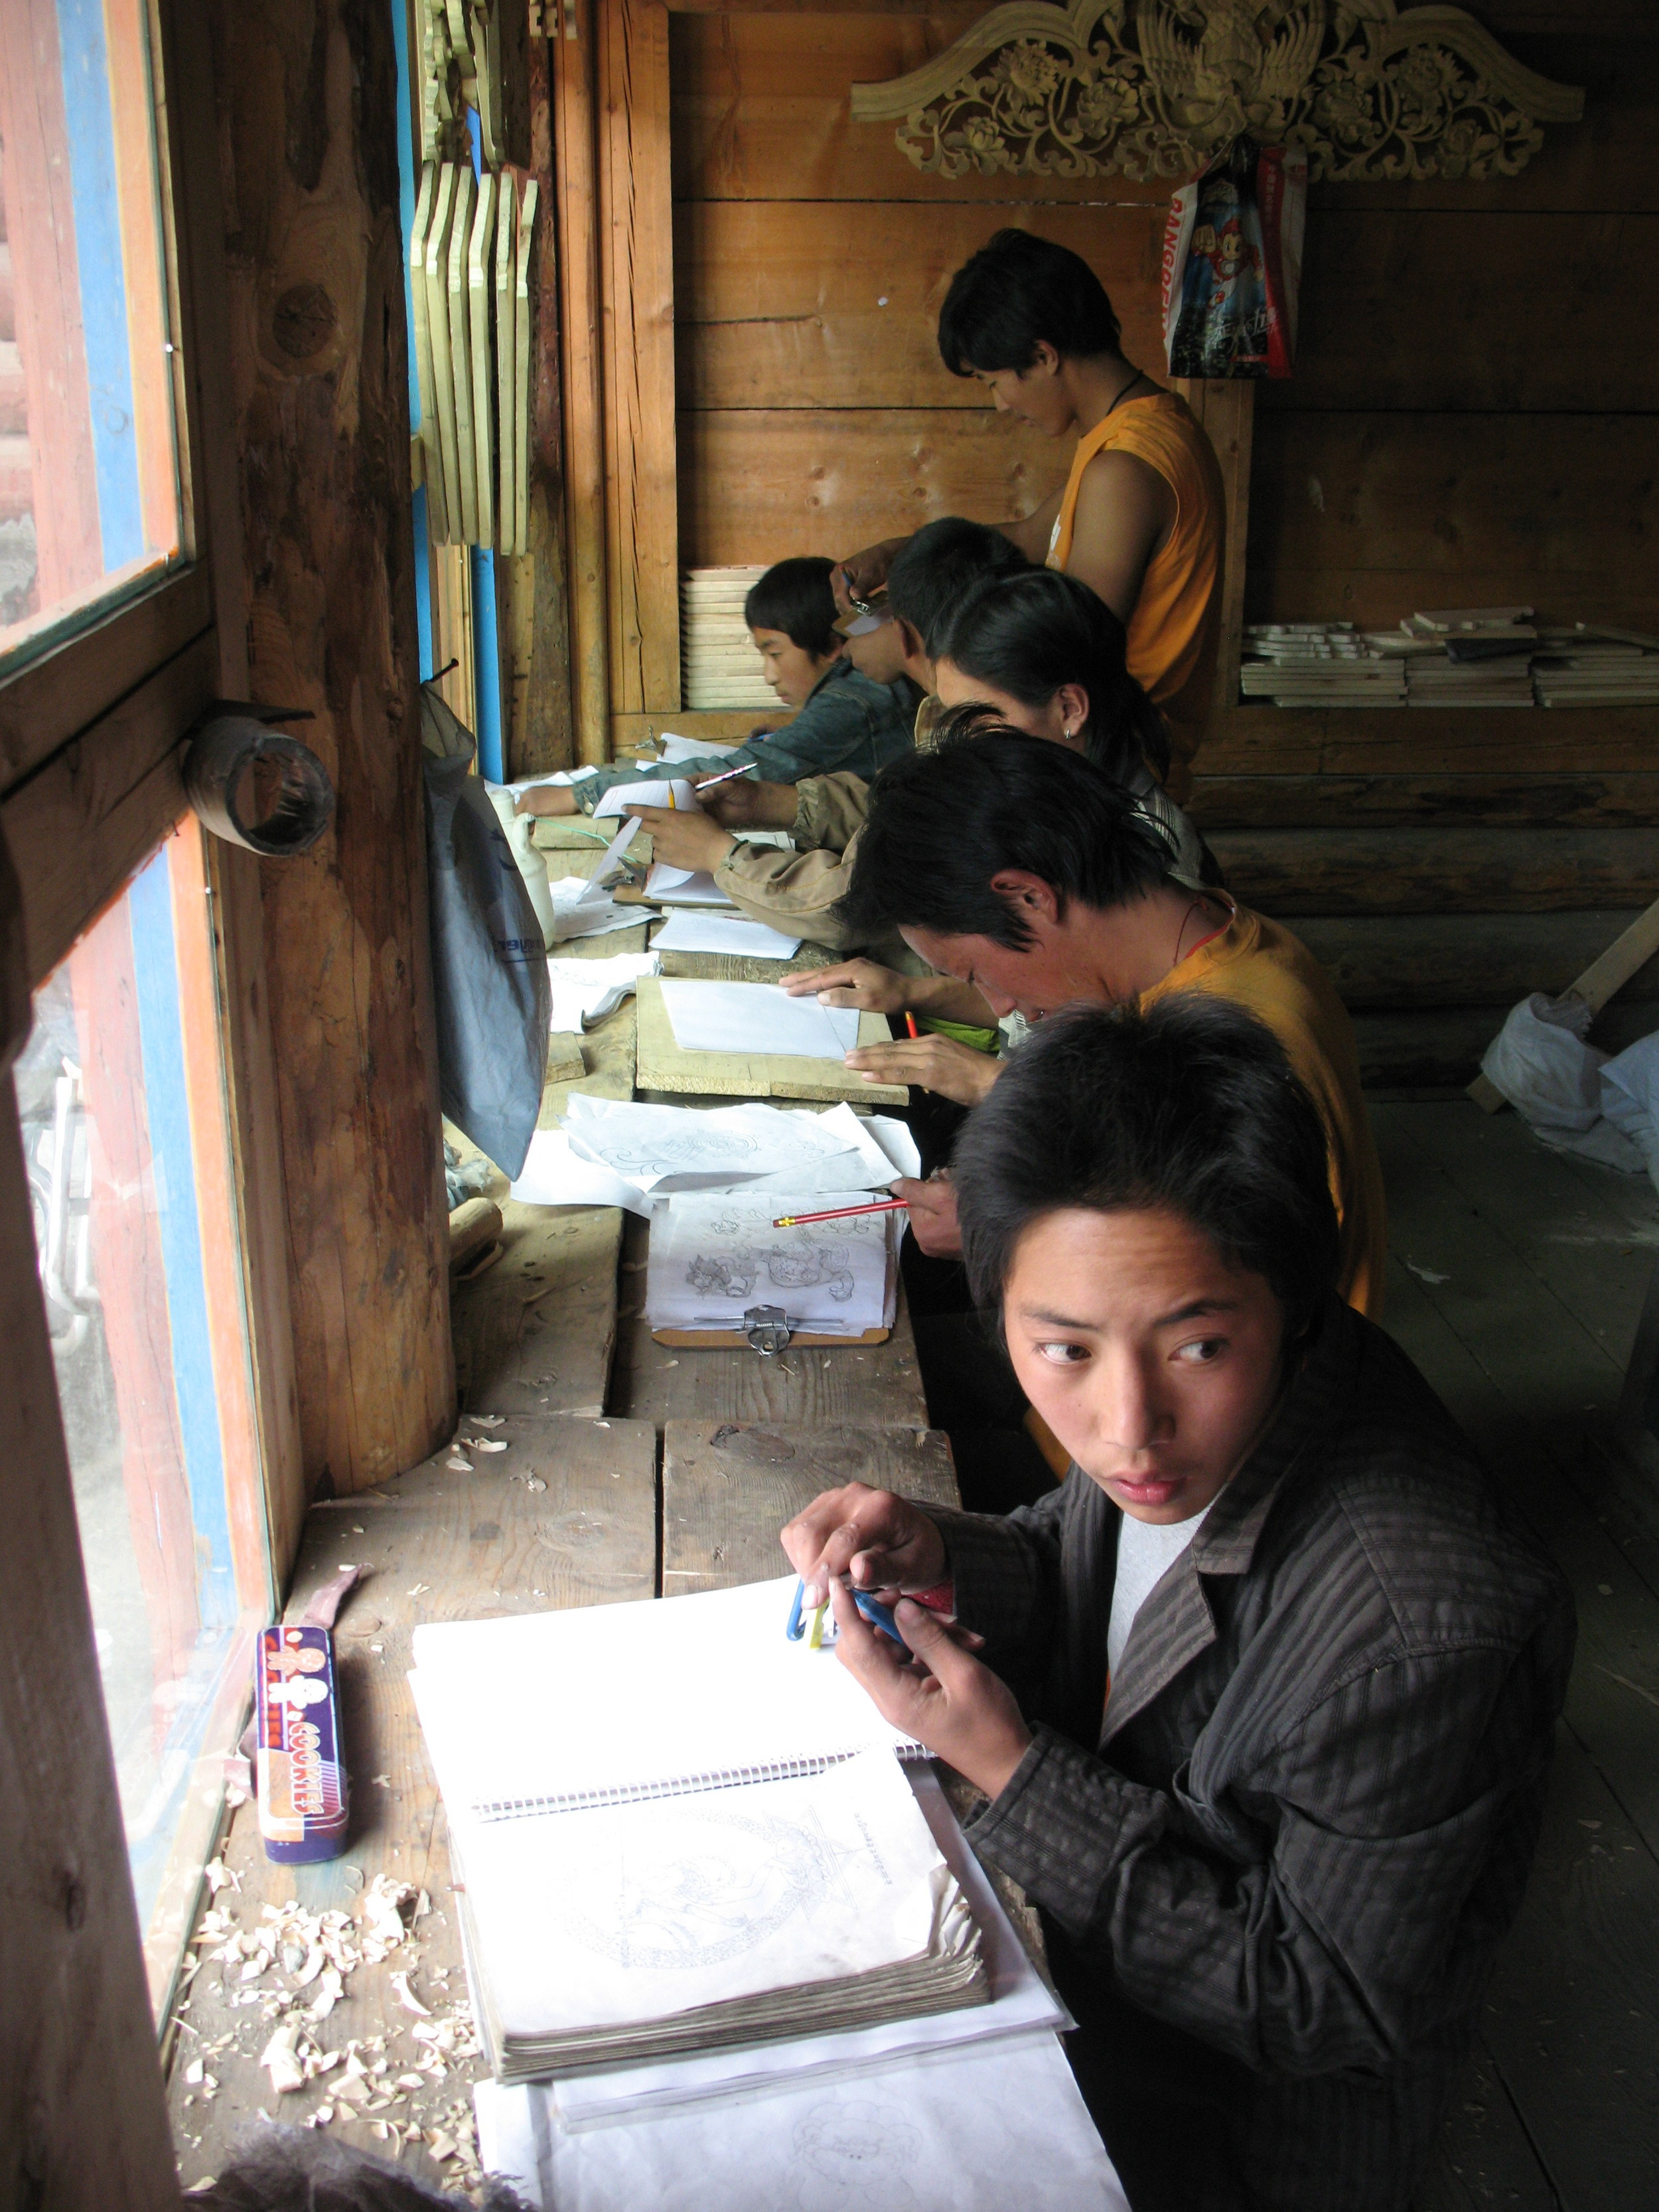 Dzongsar wood-carving school